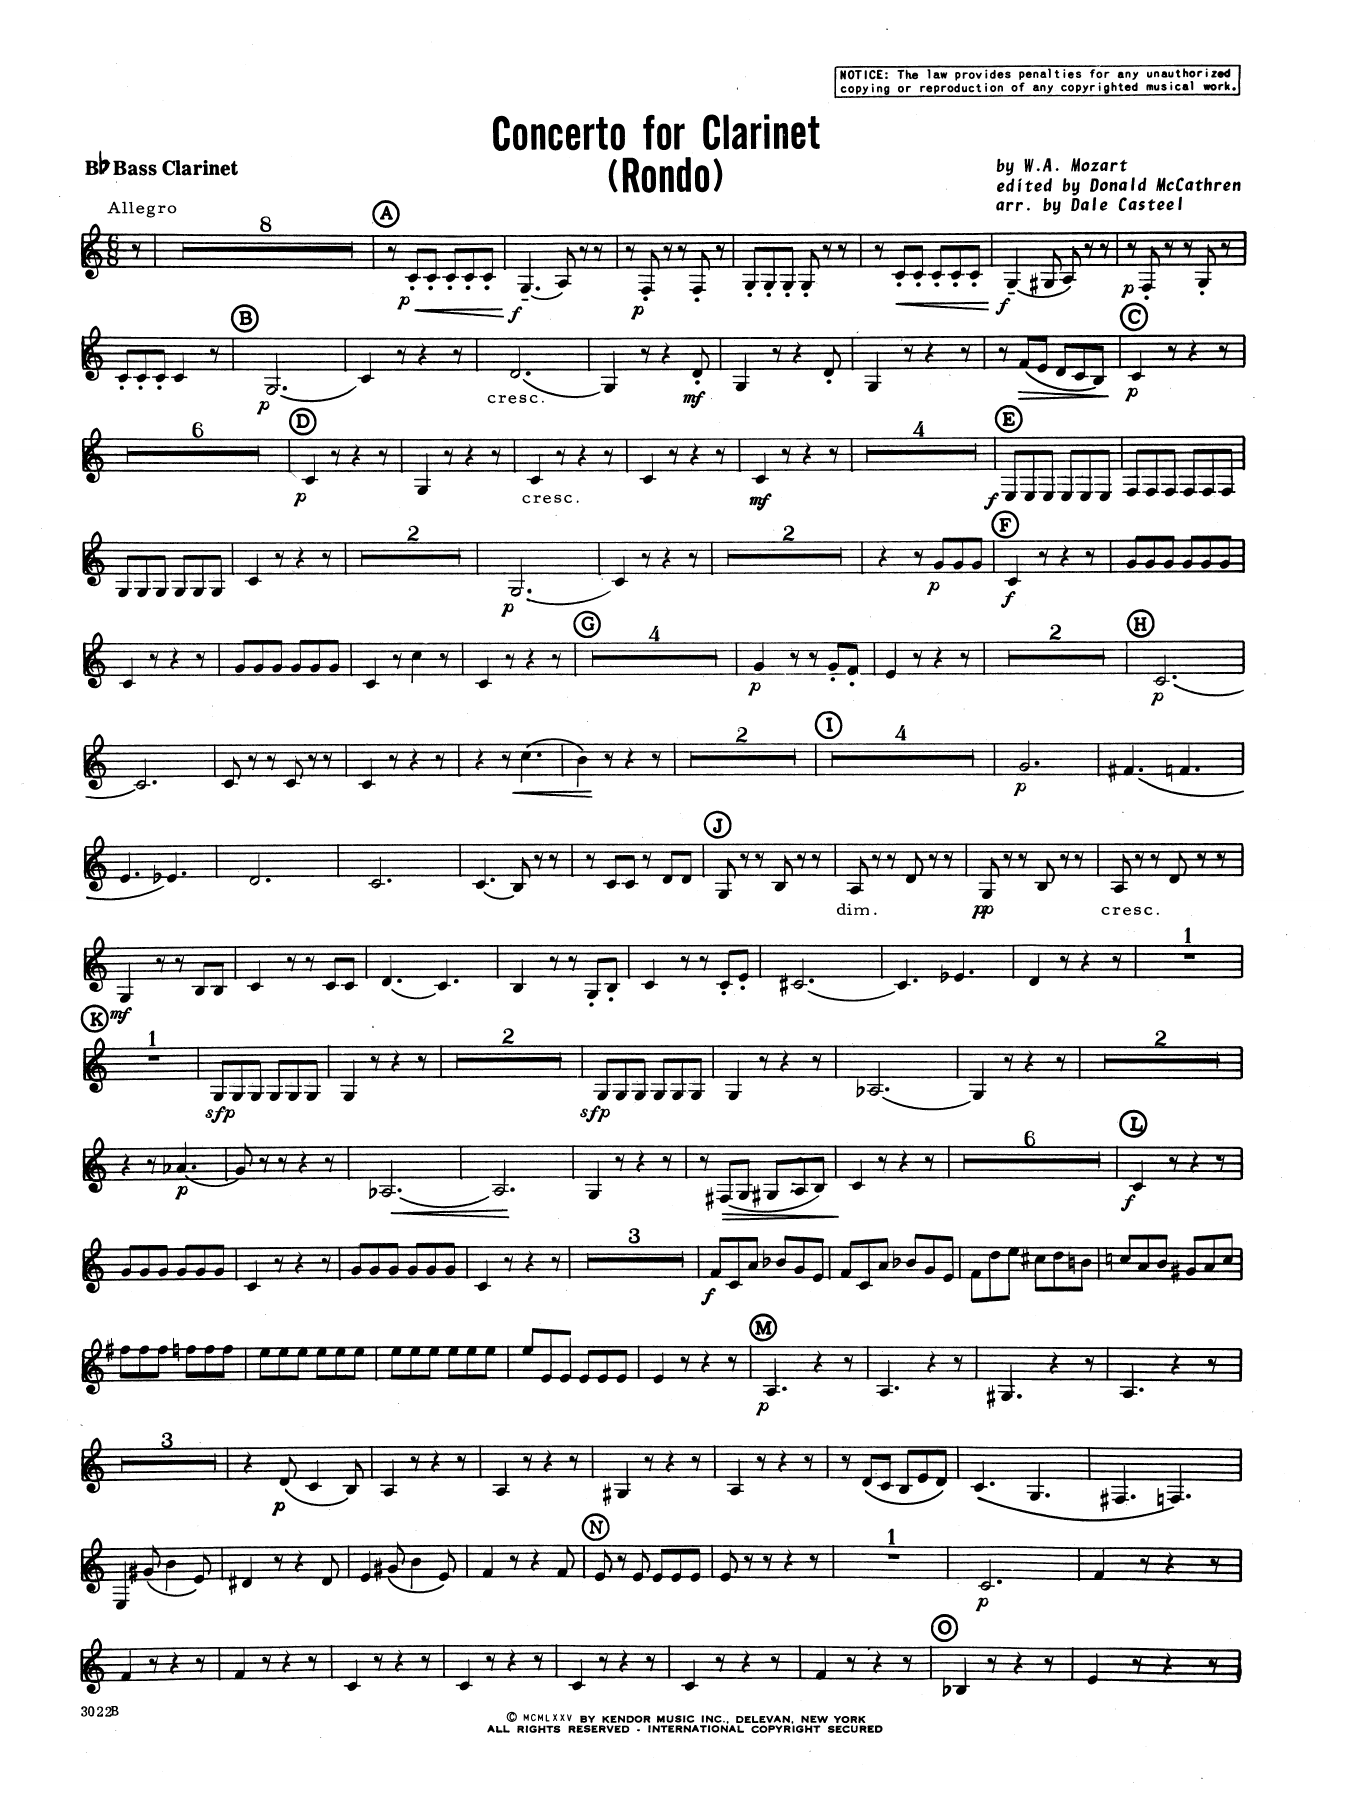 Donald McCathren and Dale Casteel Concerto For Clarinet - Rondo (3rd Movement) - K.622 - Bb Bass Clarinet sheet music notes printable PDF score